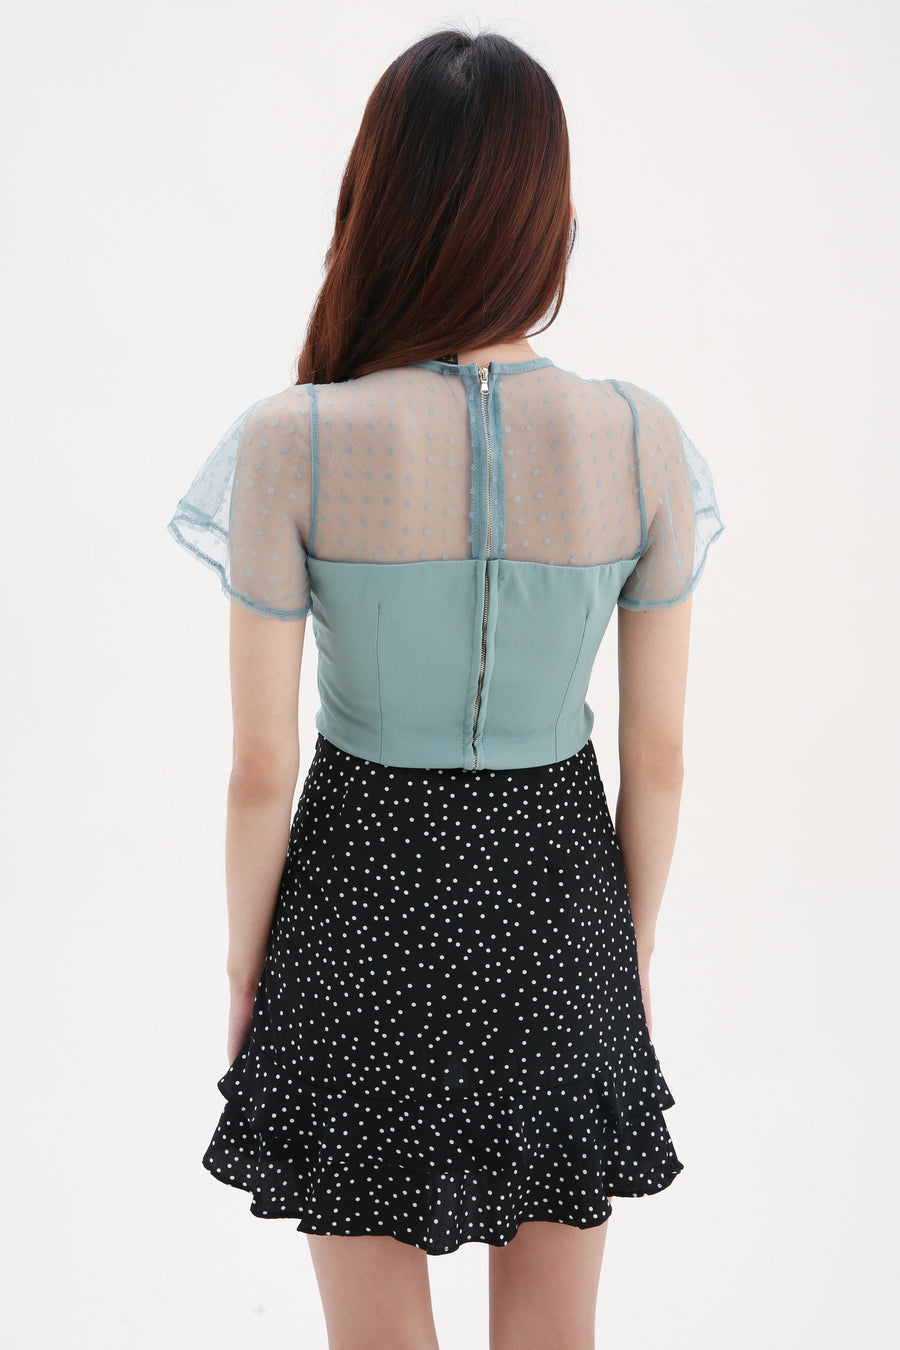 Polka Dot Net Top 8130 Tops